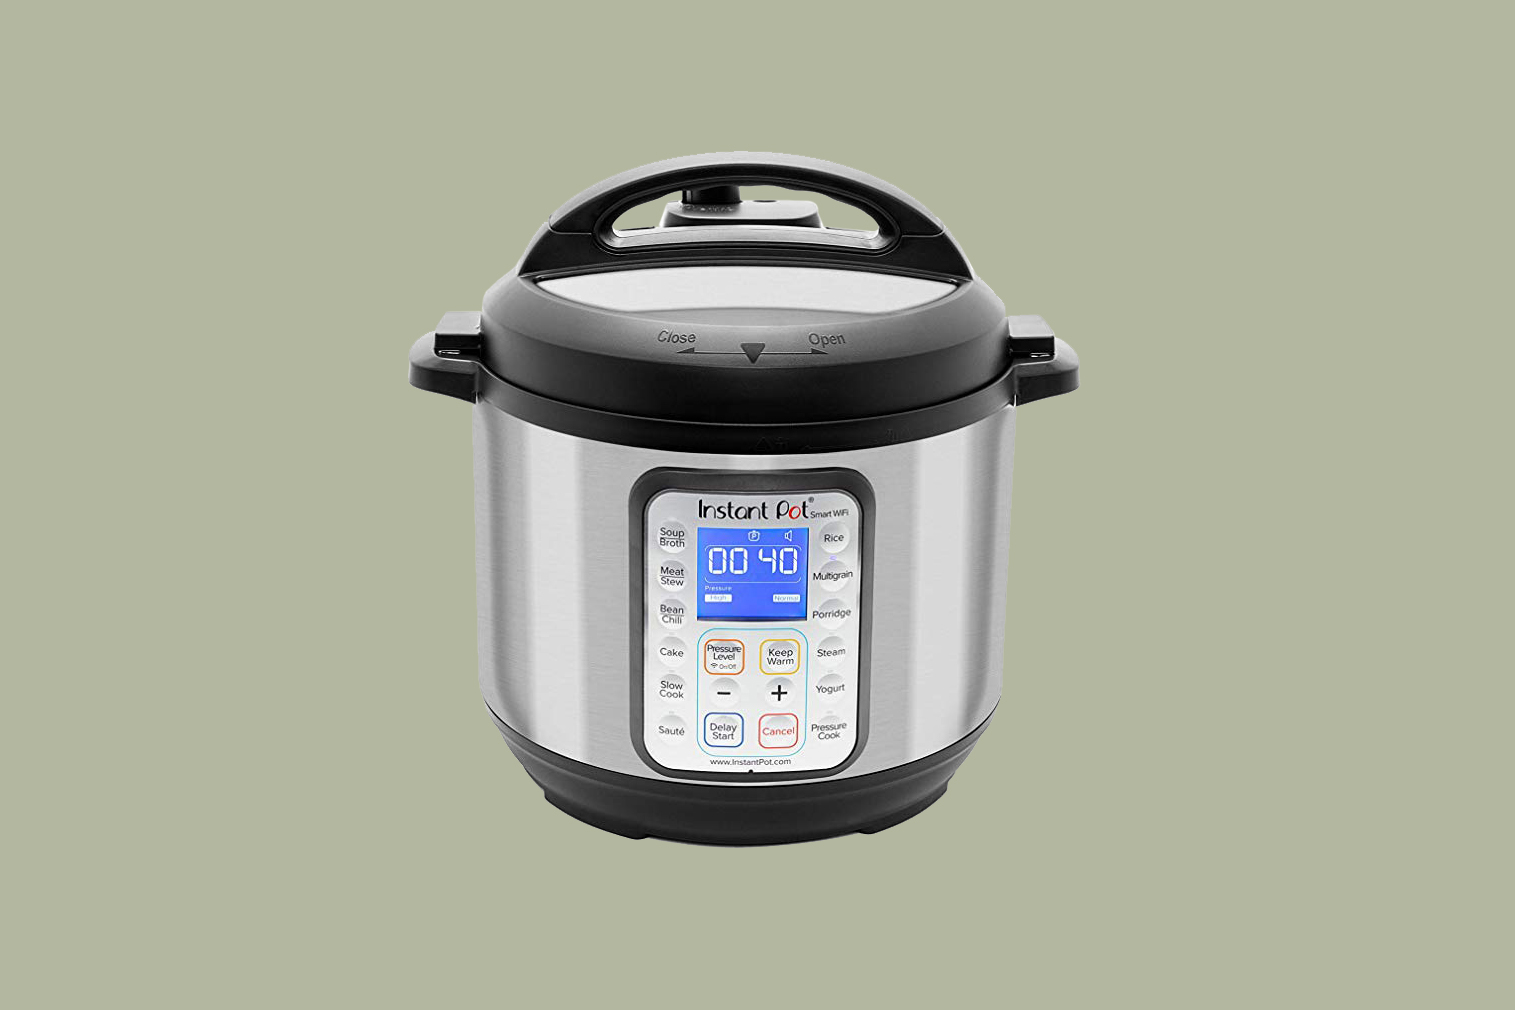 Instant Pot Pressure Cooker and Multi-Cooker